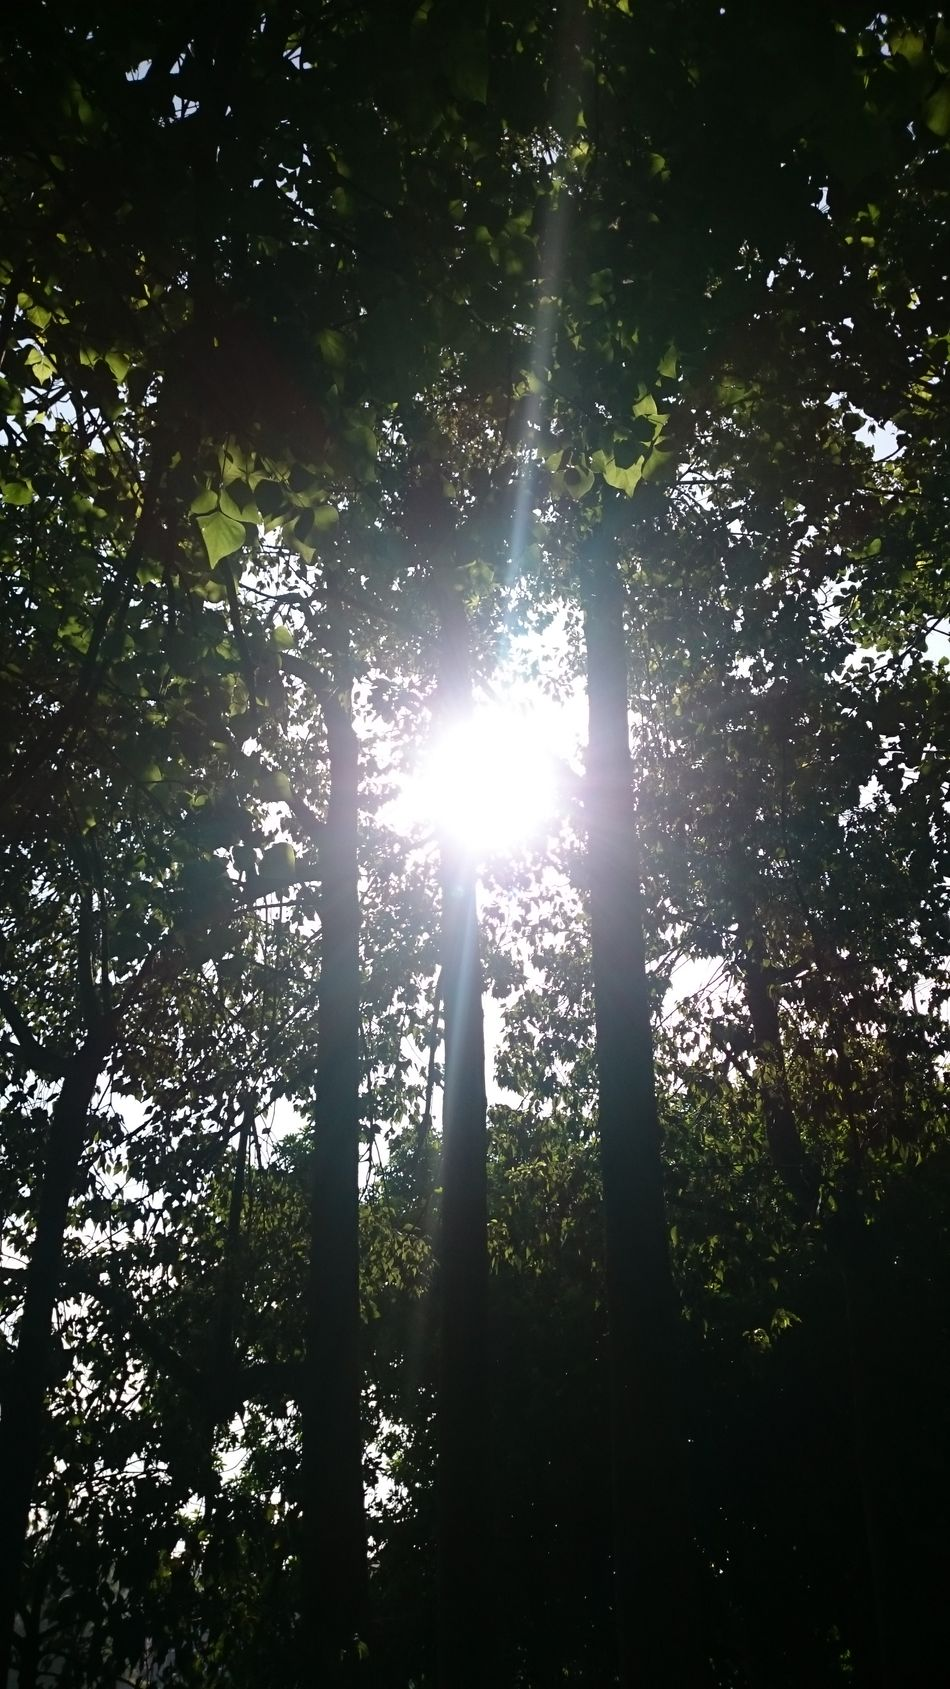 Tree Nature No People Sunlight Growth Sunbeam Low Angle View Leaf Beauty In Nature Tranquility Scenics Backgrounds Shiny Outdoors Day Refraction Sky Close-up